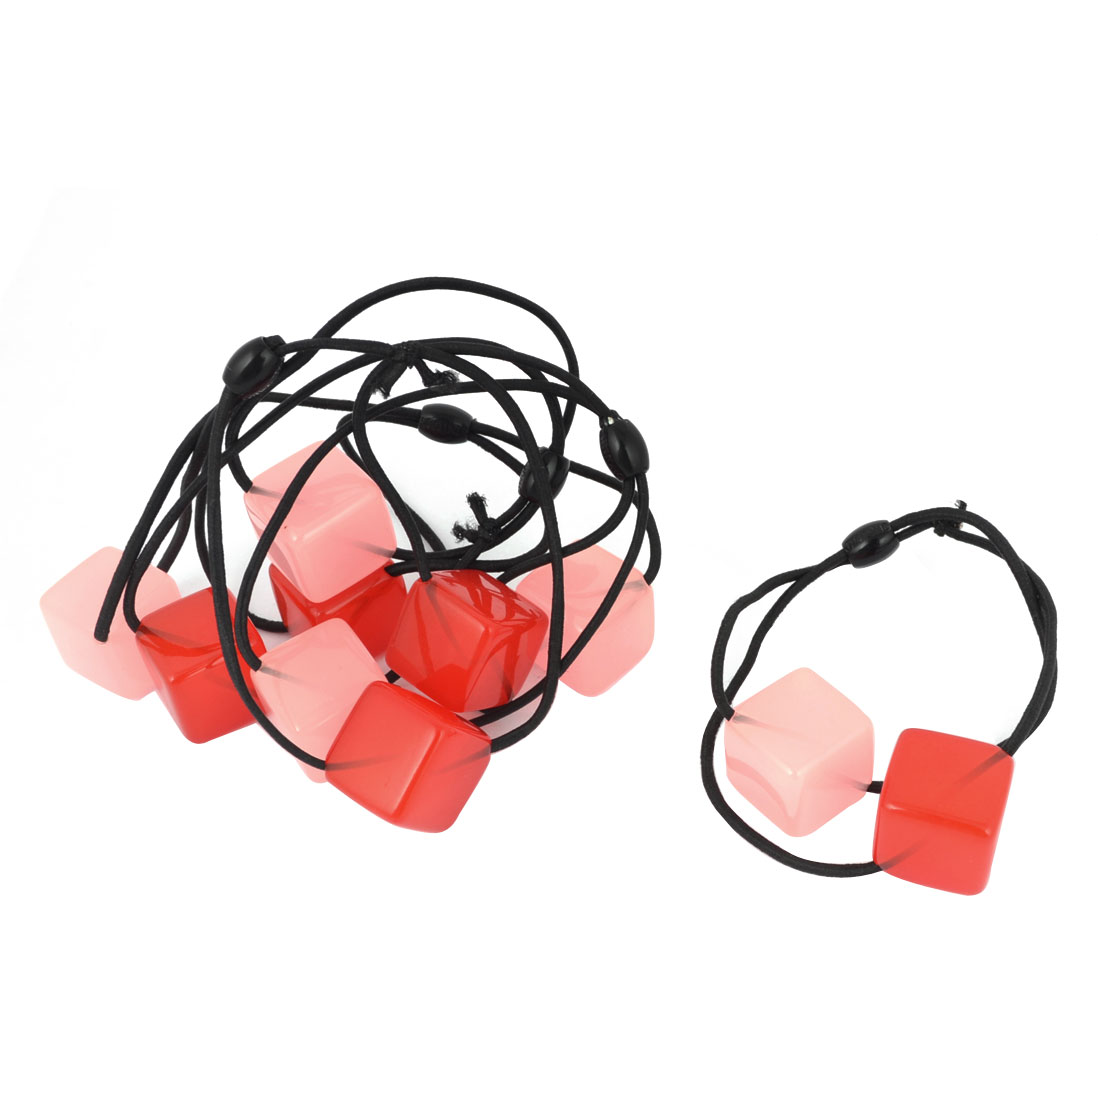 Women Plastic Cubic Detail Elastic Hair Tie Ponytail Holder Pink Red 5 Pcs